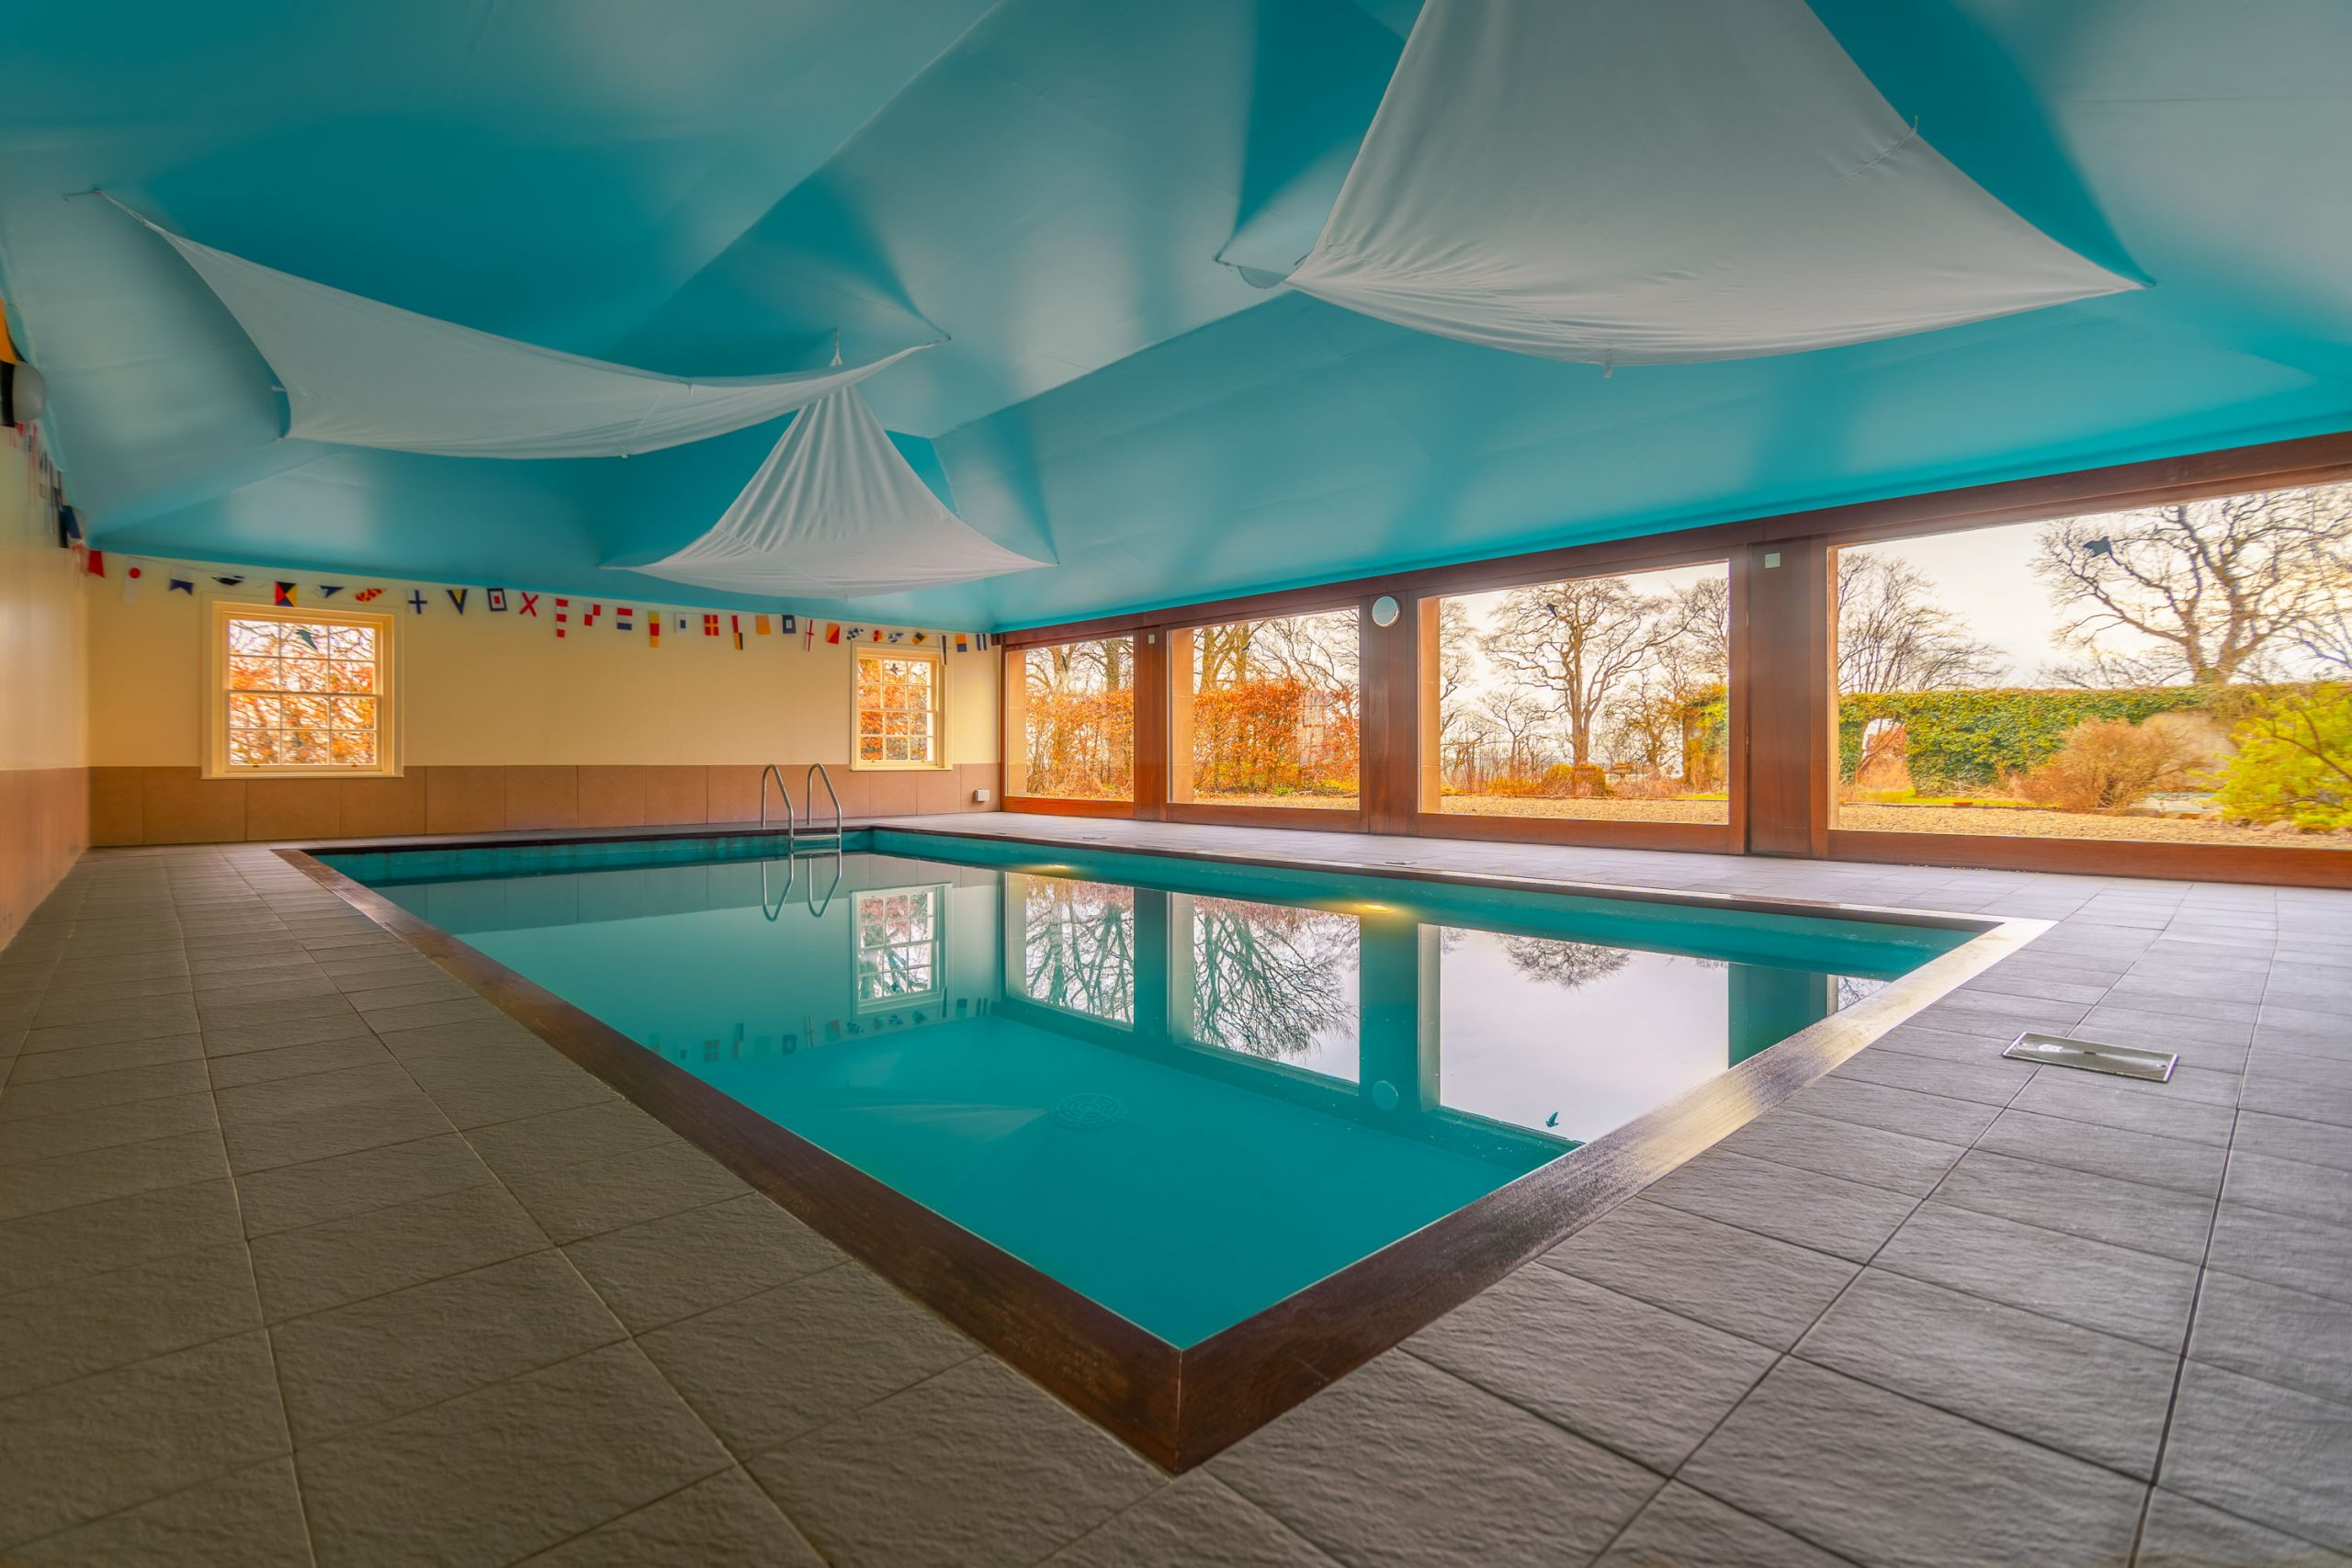 A picture of a pool inside the house of Cragie